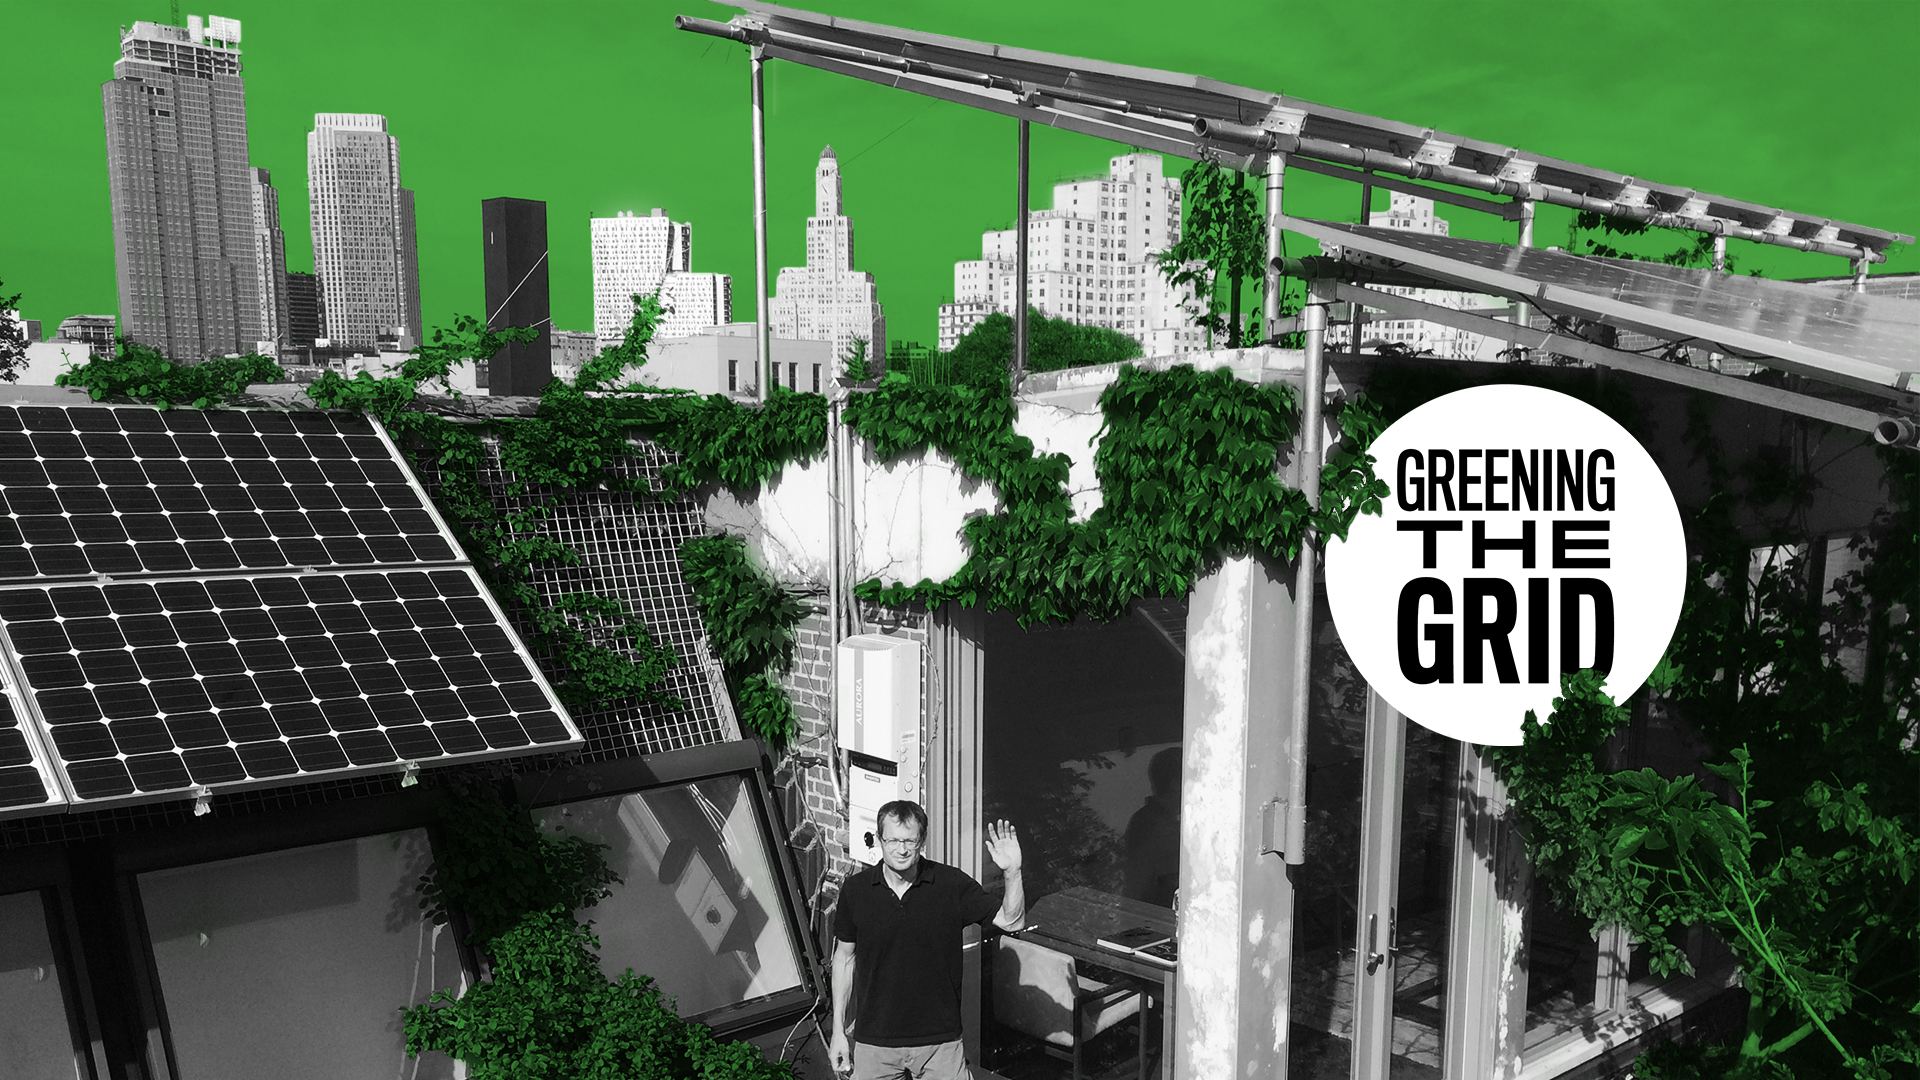 Greening the Grid: New York's Energy Future